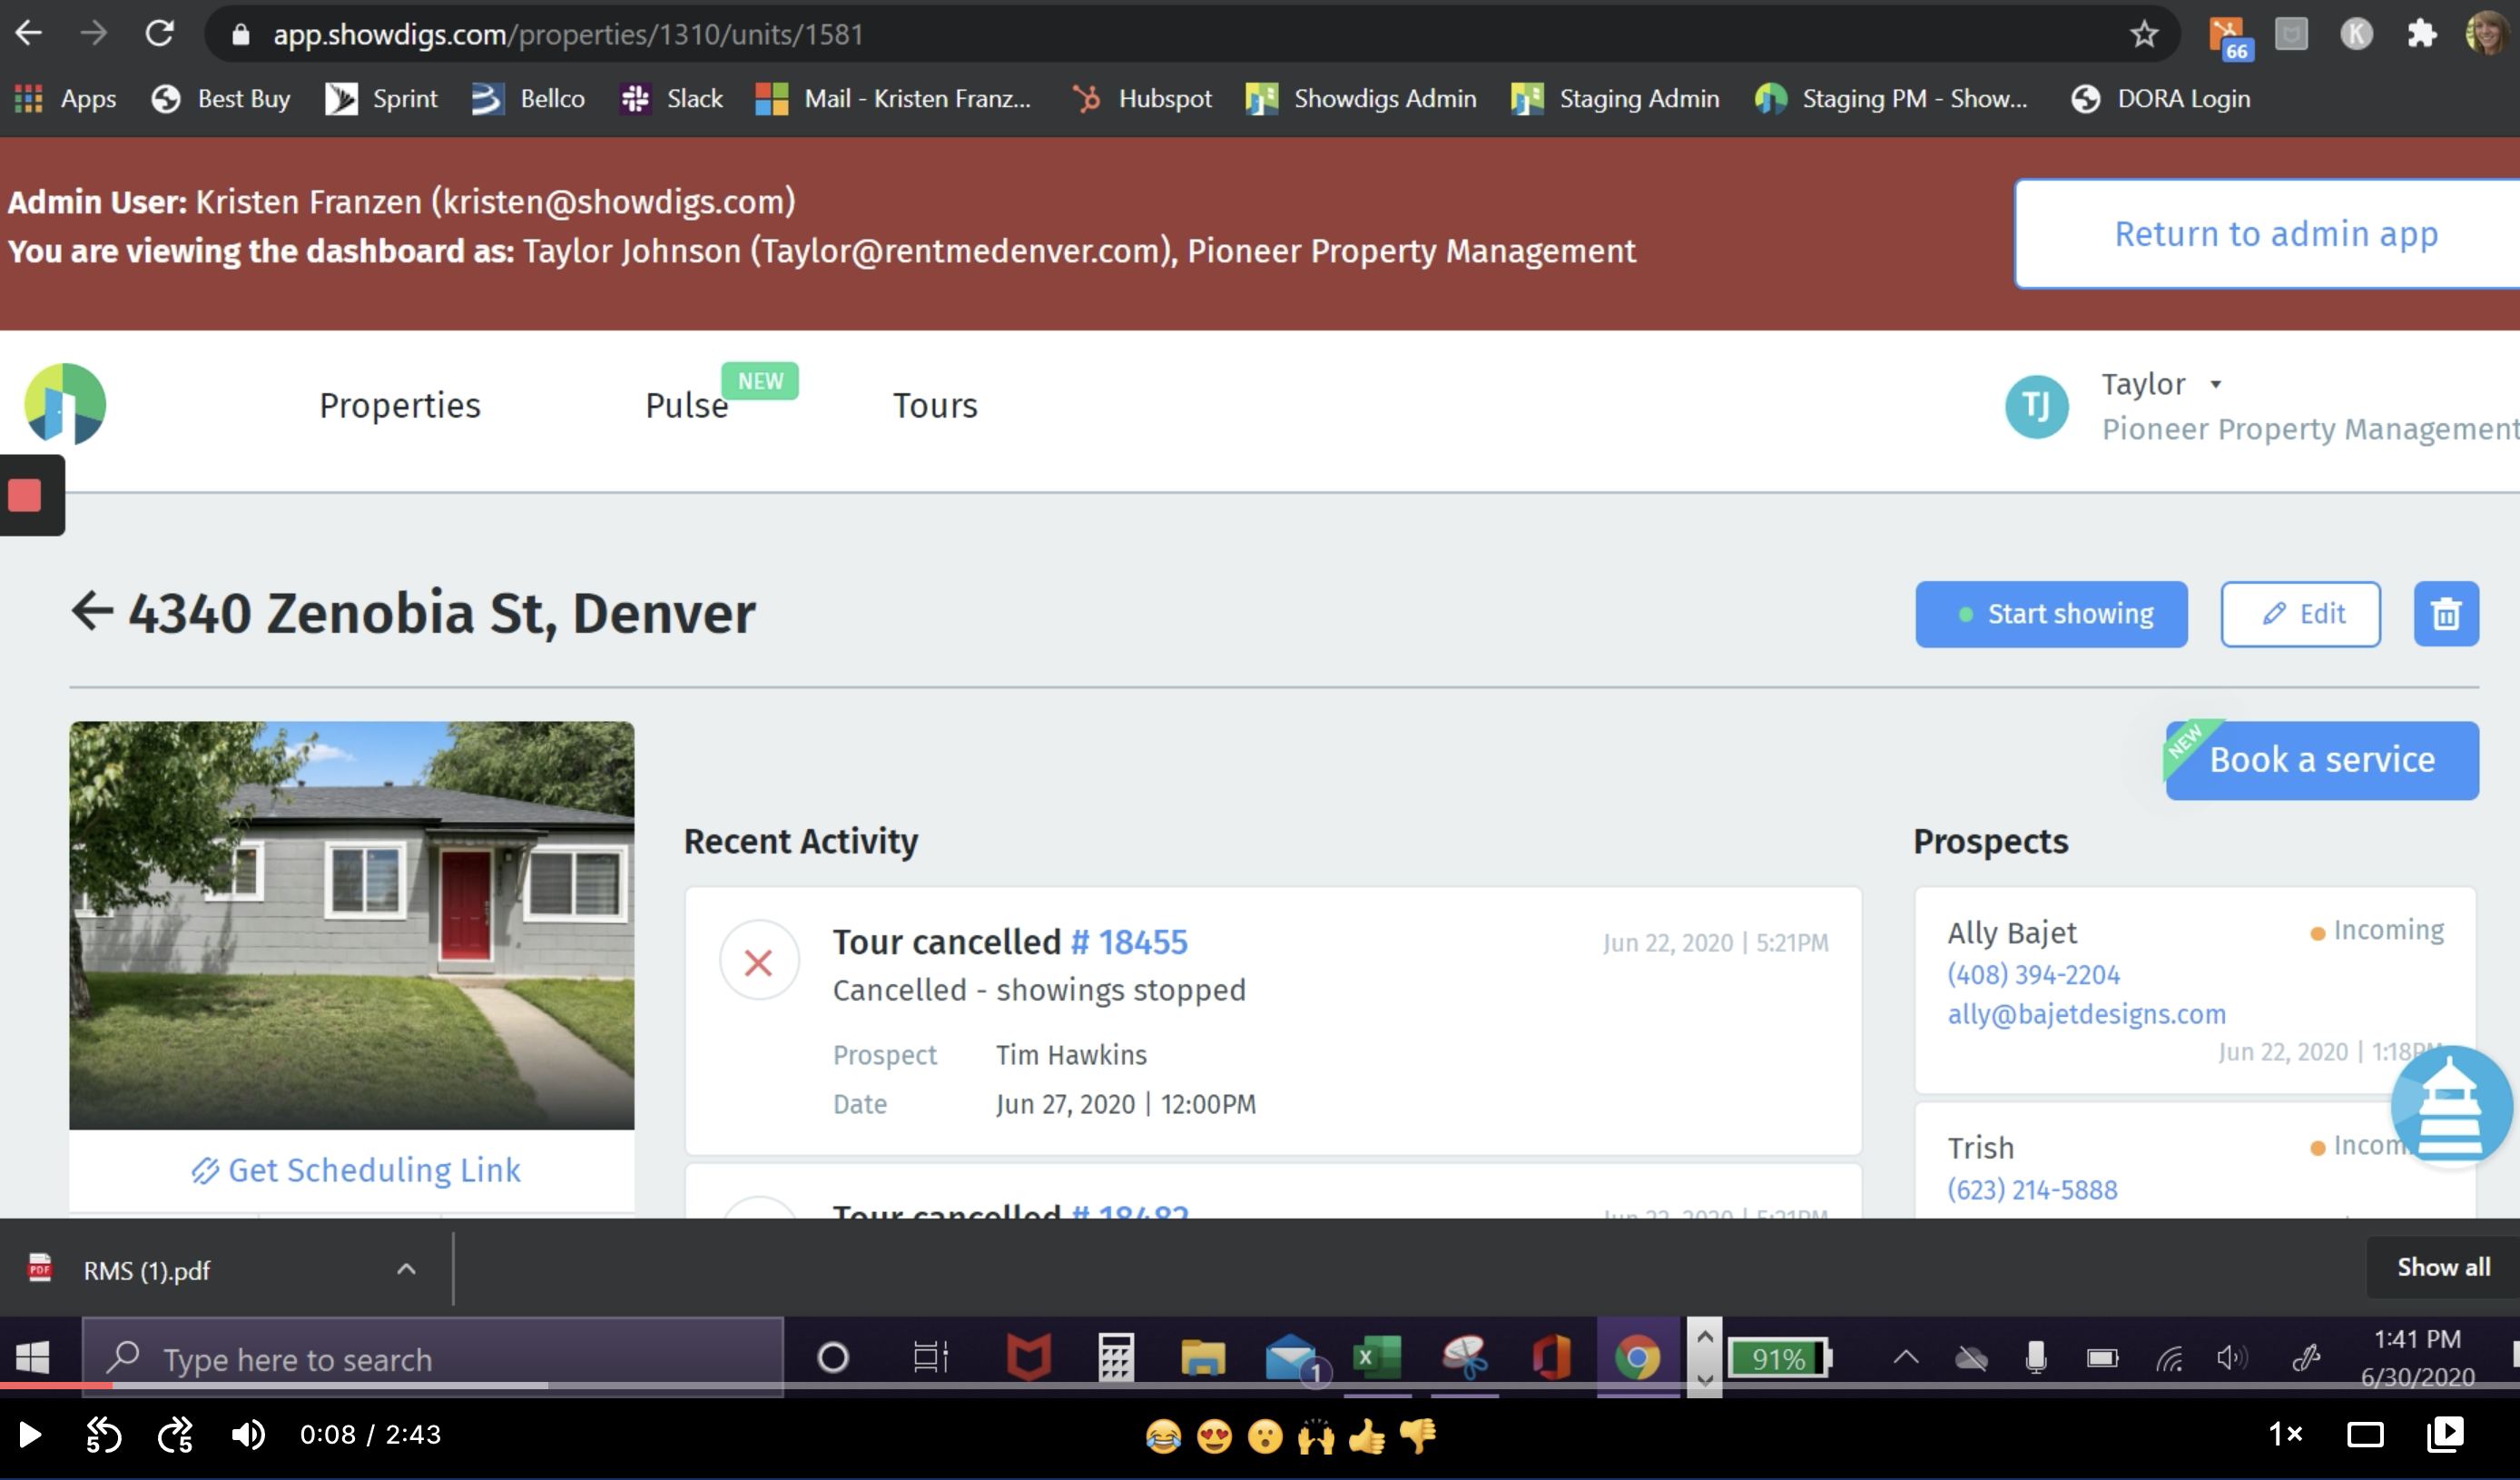 How to connect your TenantTurner listings to your Showdigs account